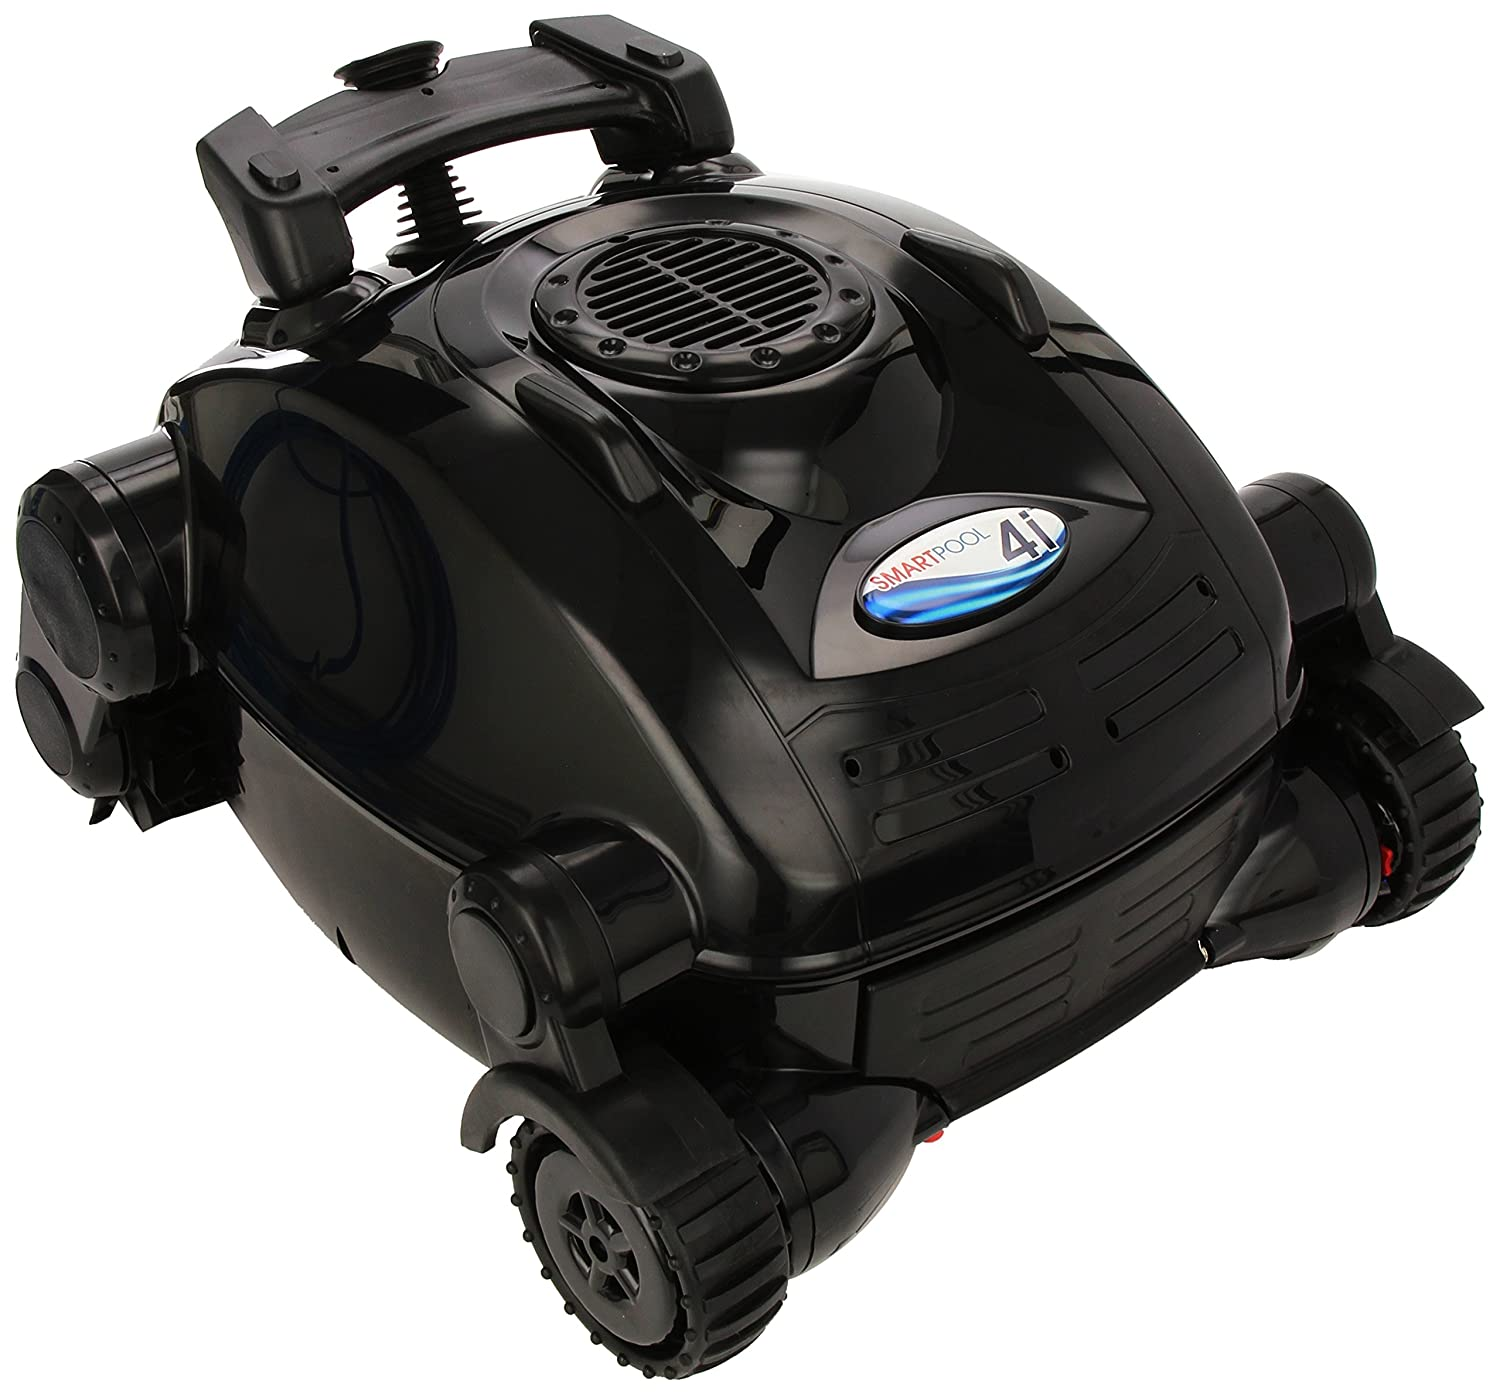 Top 10 Best Robotic Pool Cleaner Reviews List And